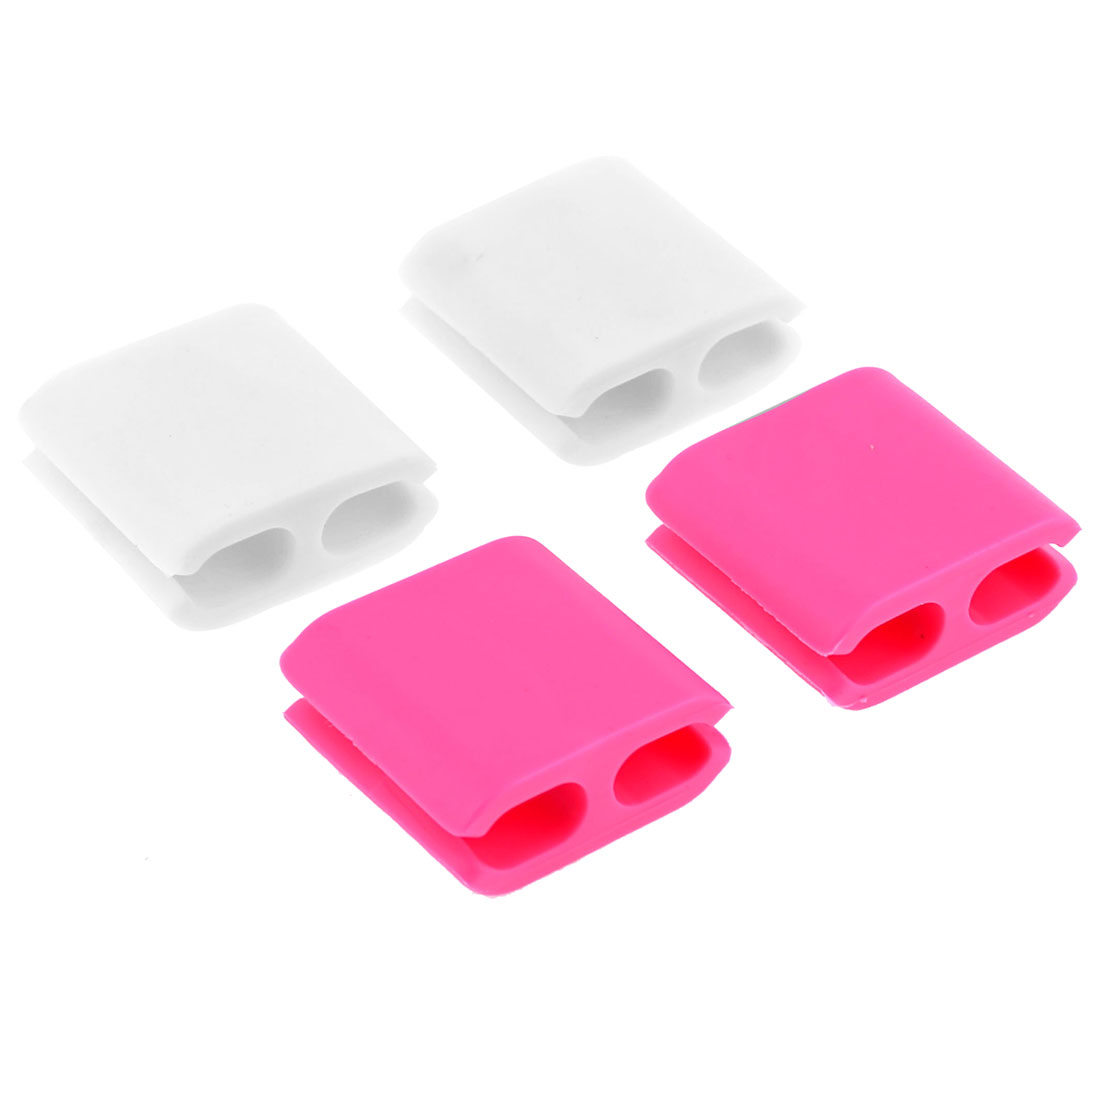 White Pink Rubber Wire Cable Drop Clip Holder Organizer 4 Pcs